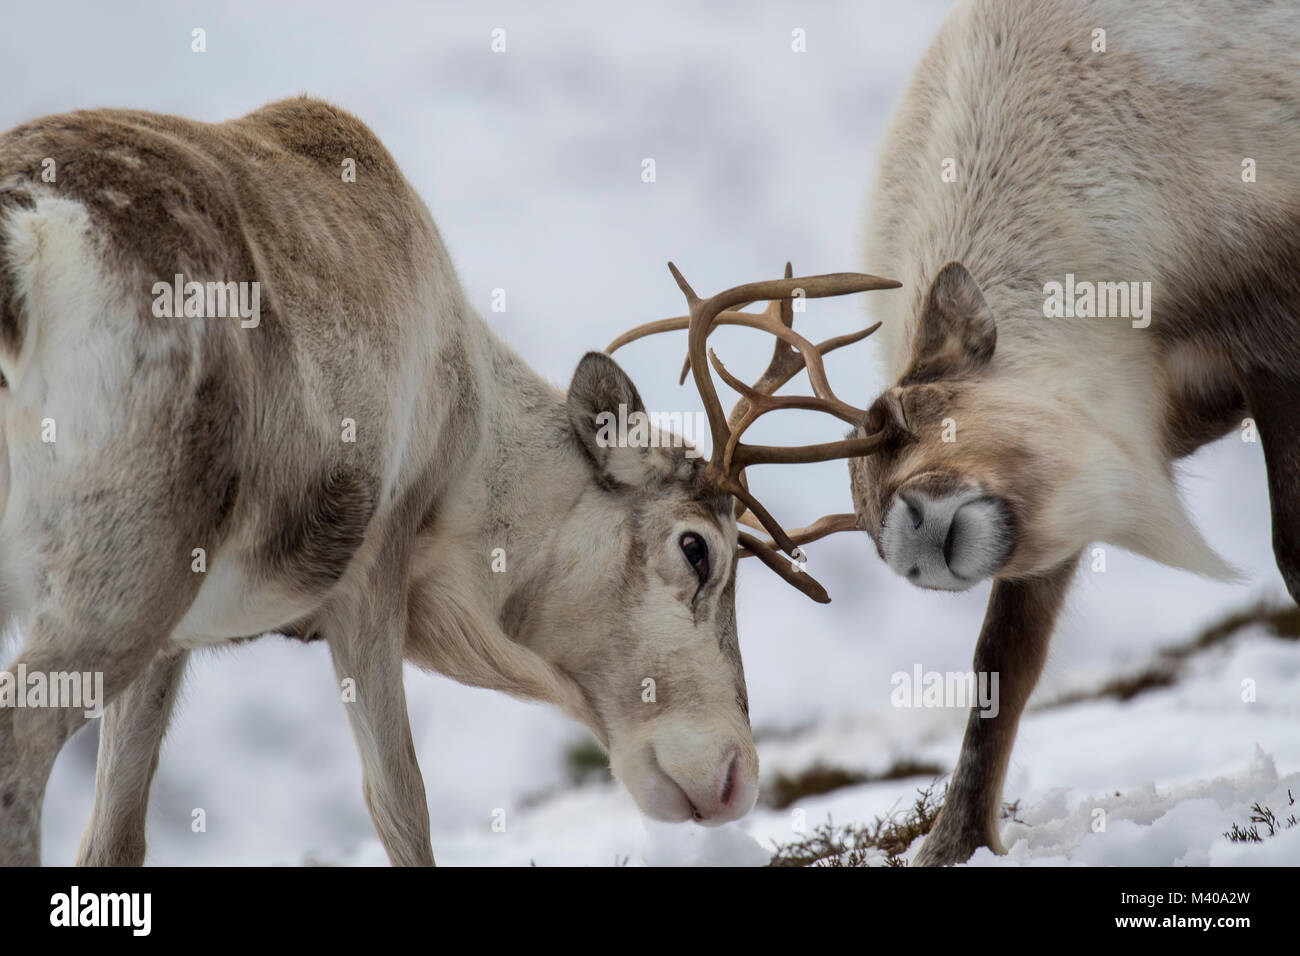 reindeer, Rangifer tarandus, grazing, foraging in the snow on a windy cold winters day on a hill in the cairngorms - Stock Image